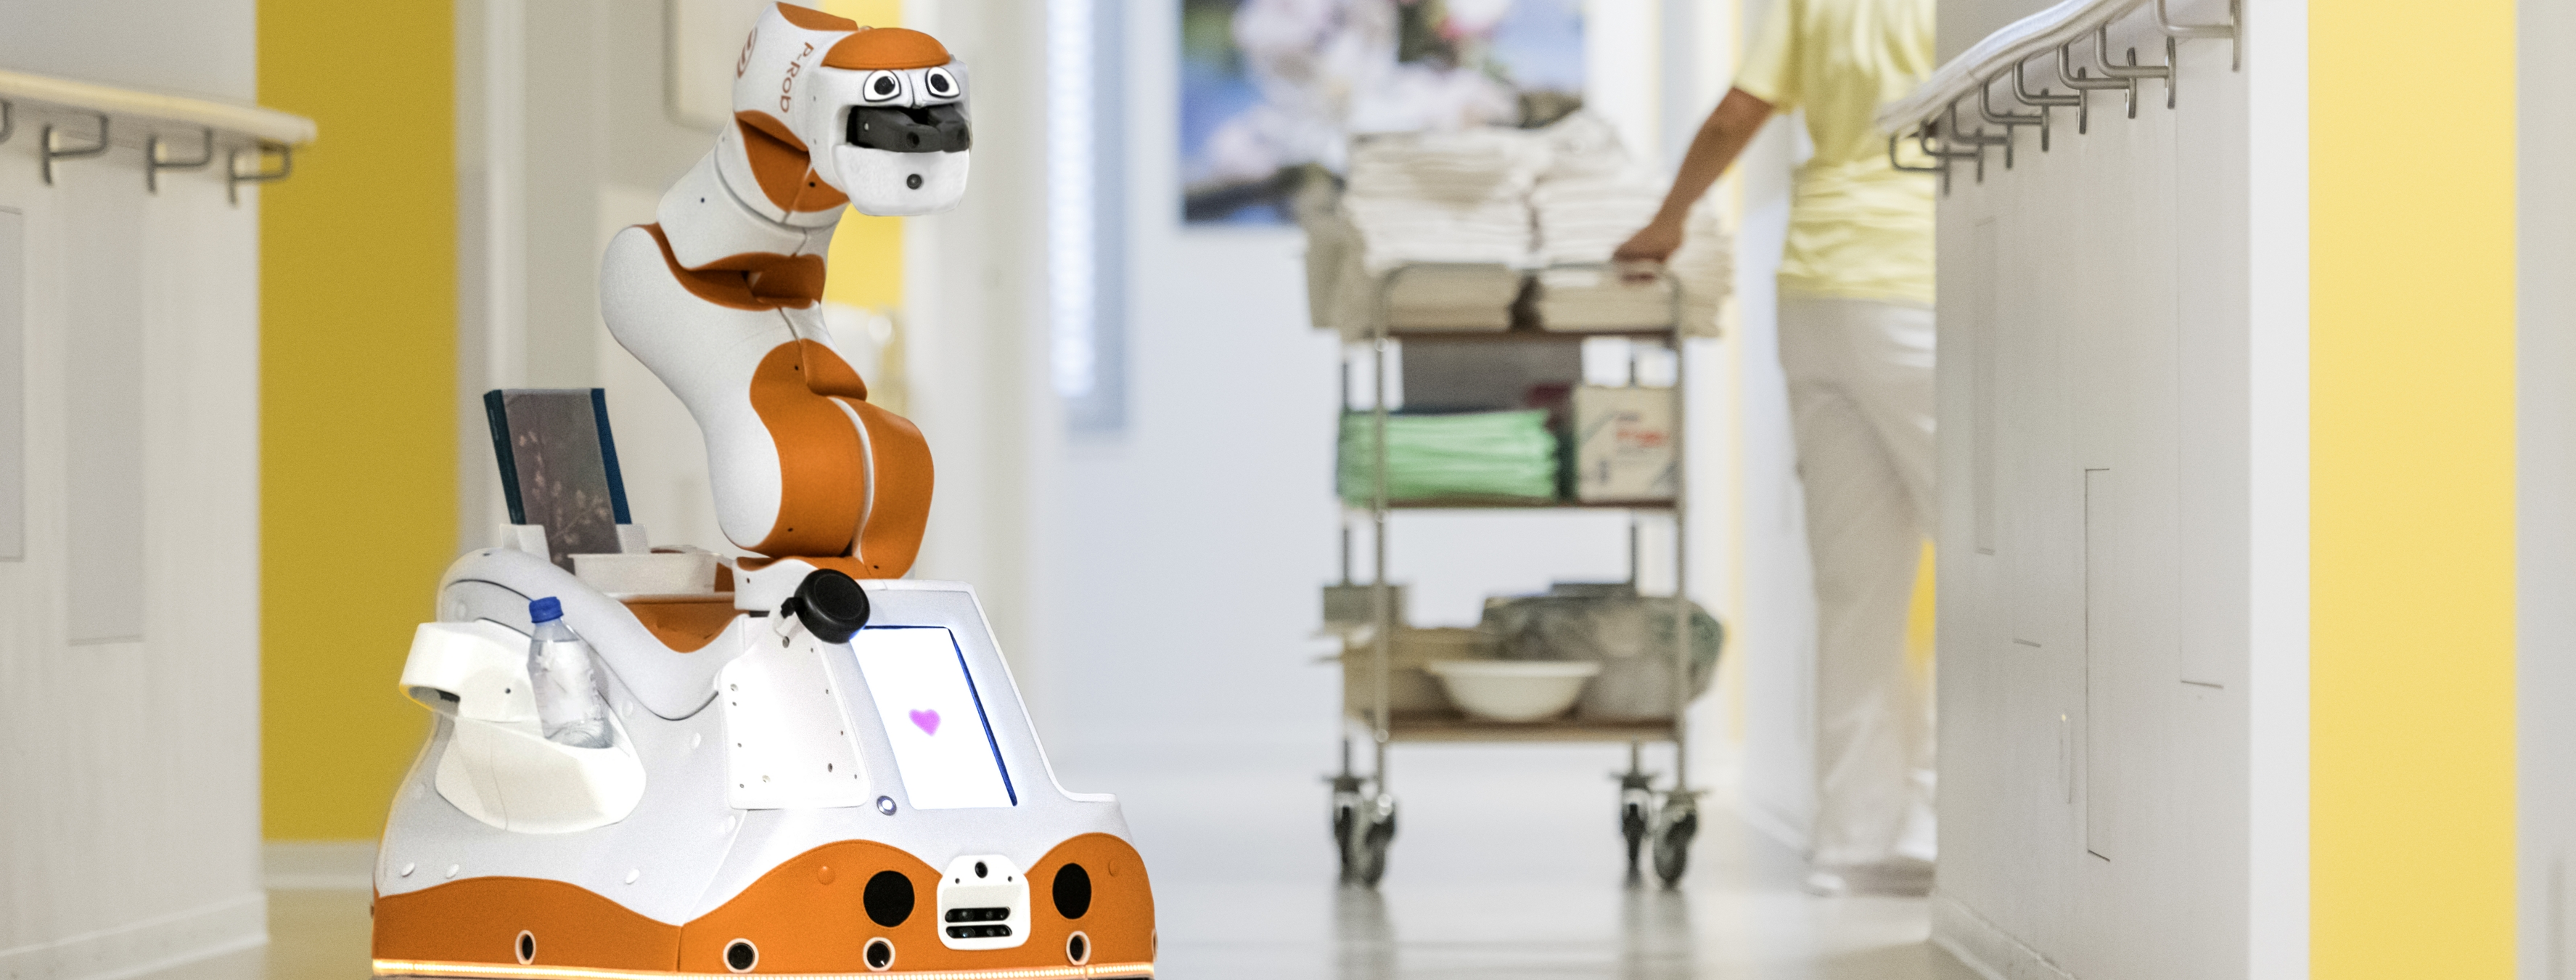 Personal robot Lio - designed to assist care personnel and improve people's quality of life